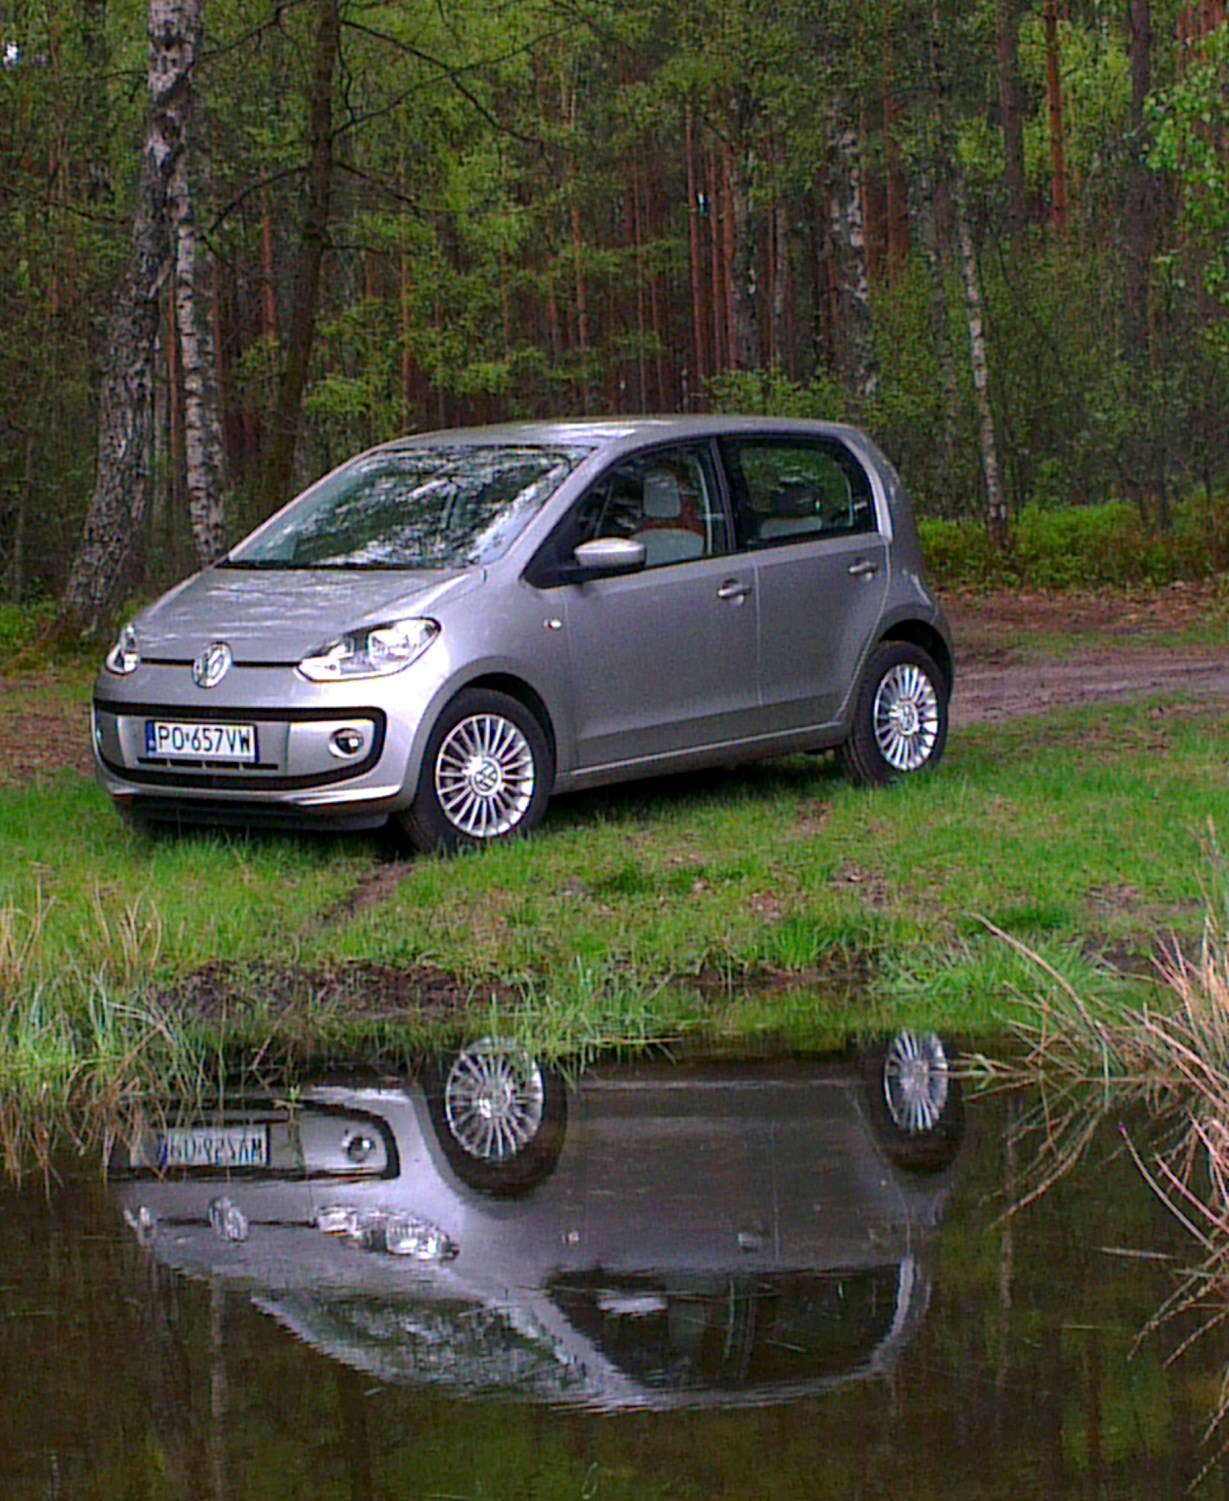 1. Volkswagen up!